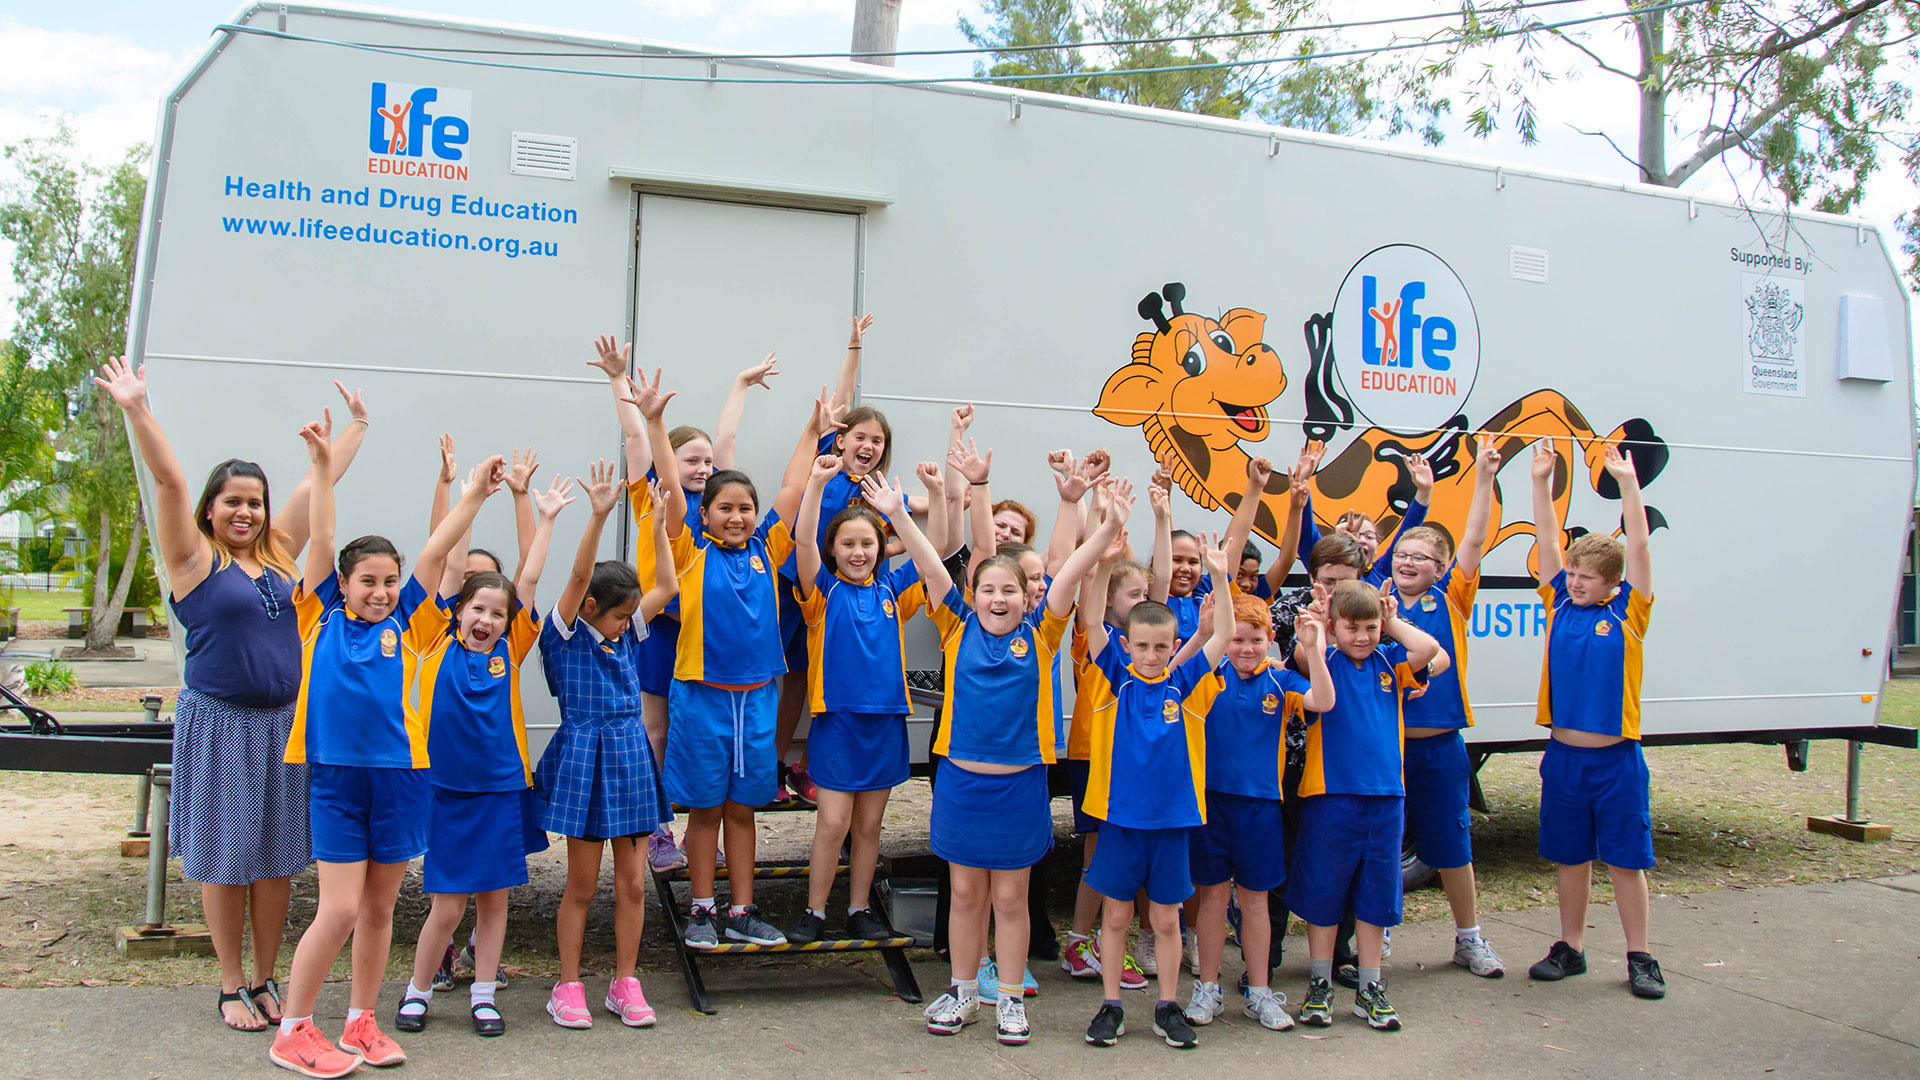 Life Education Australia